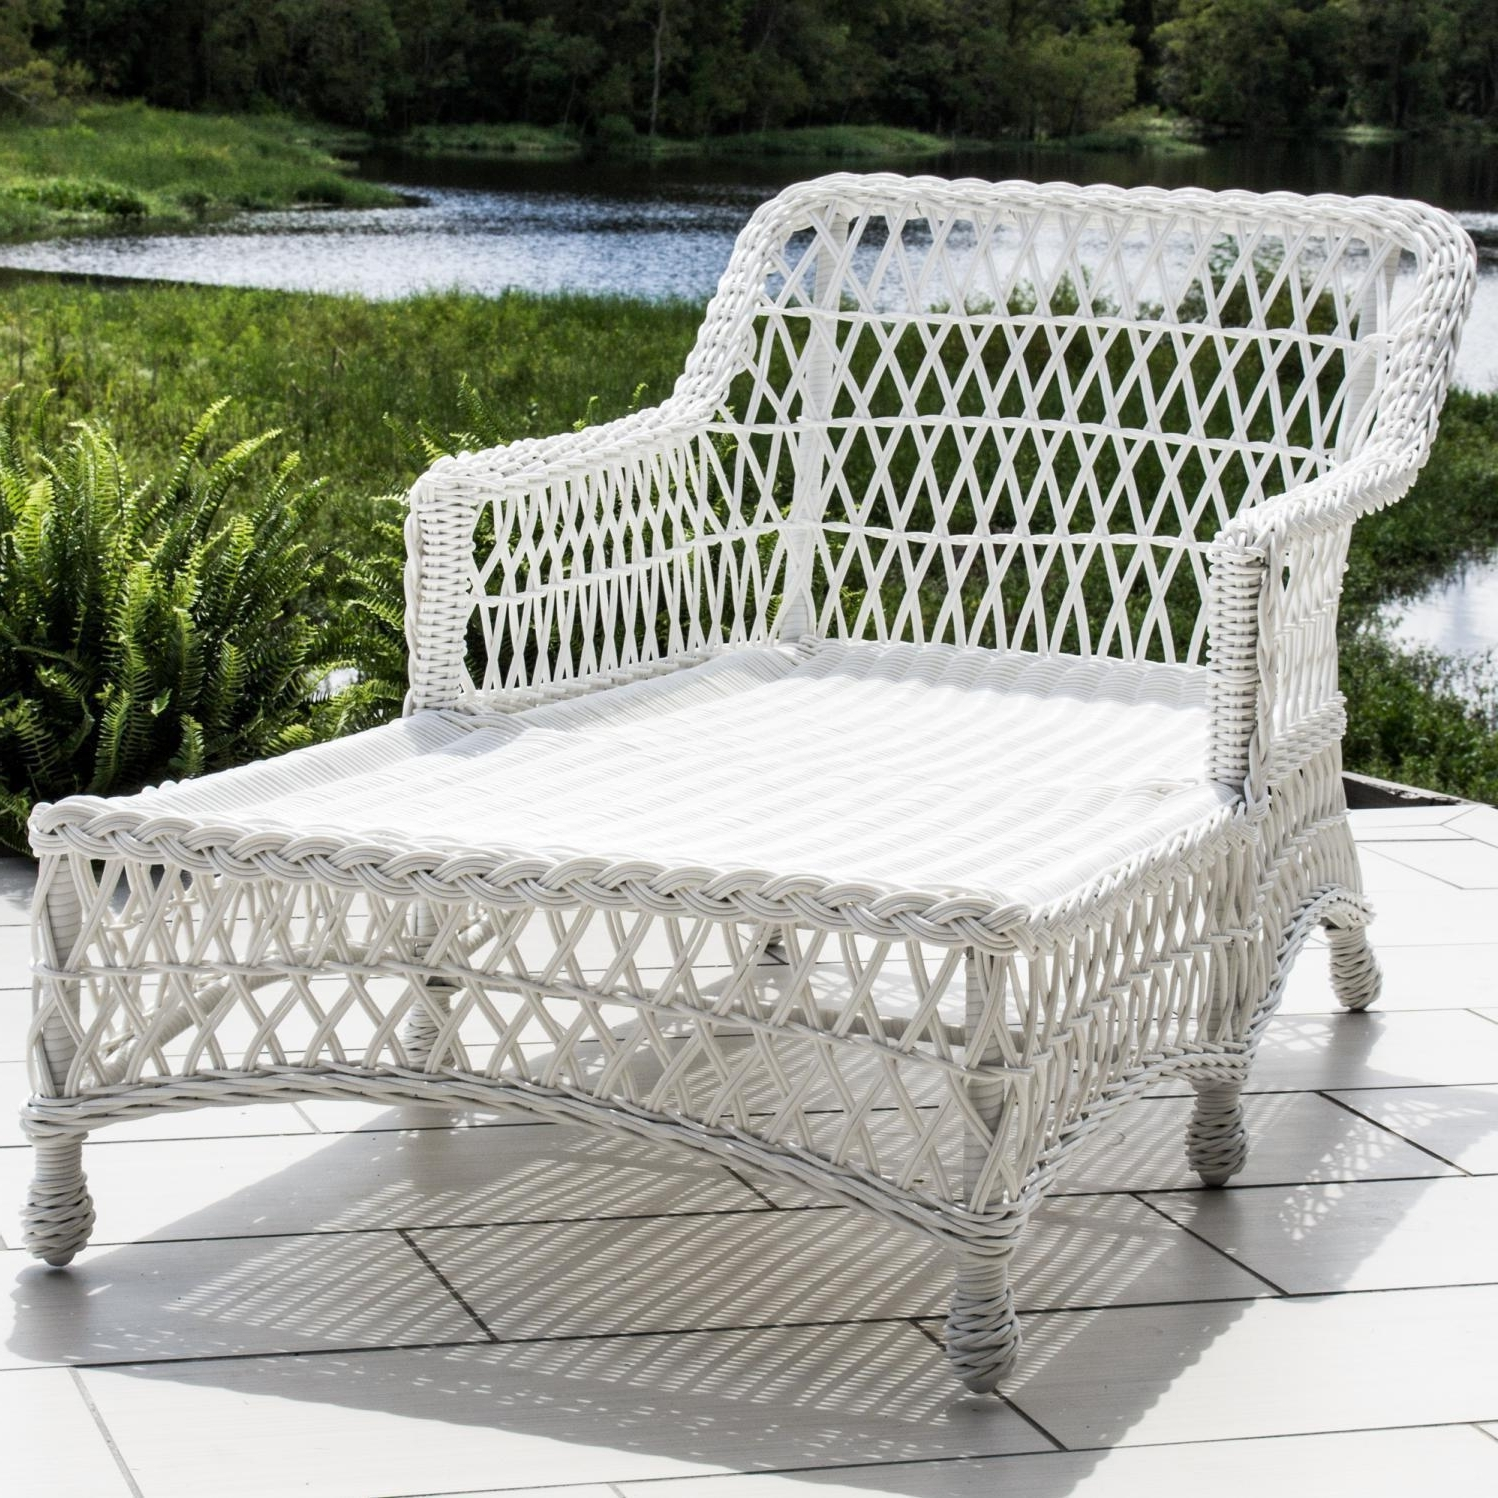 White Wicker Chaise Lounges In Well Known Everglades White Resin Wicker Patio Chaise Loungelakeview (View 4 of 15)